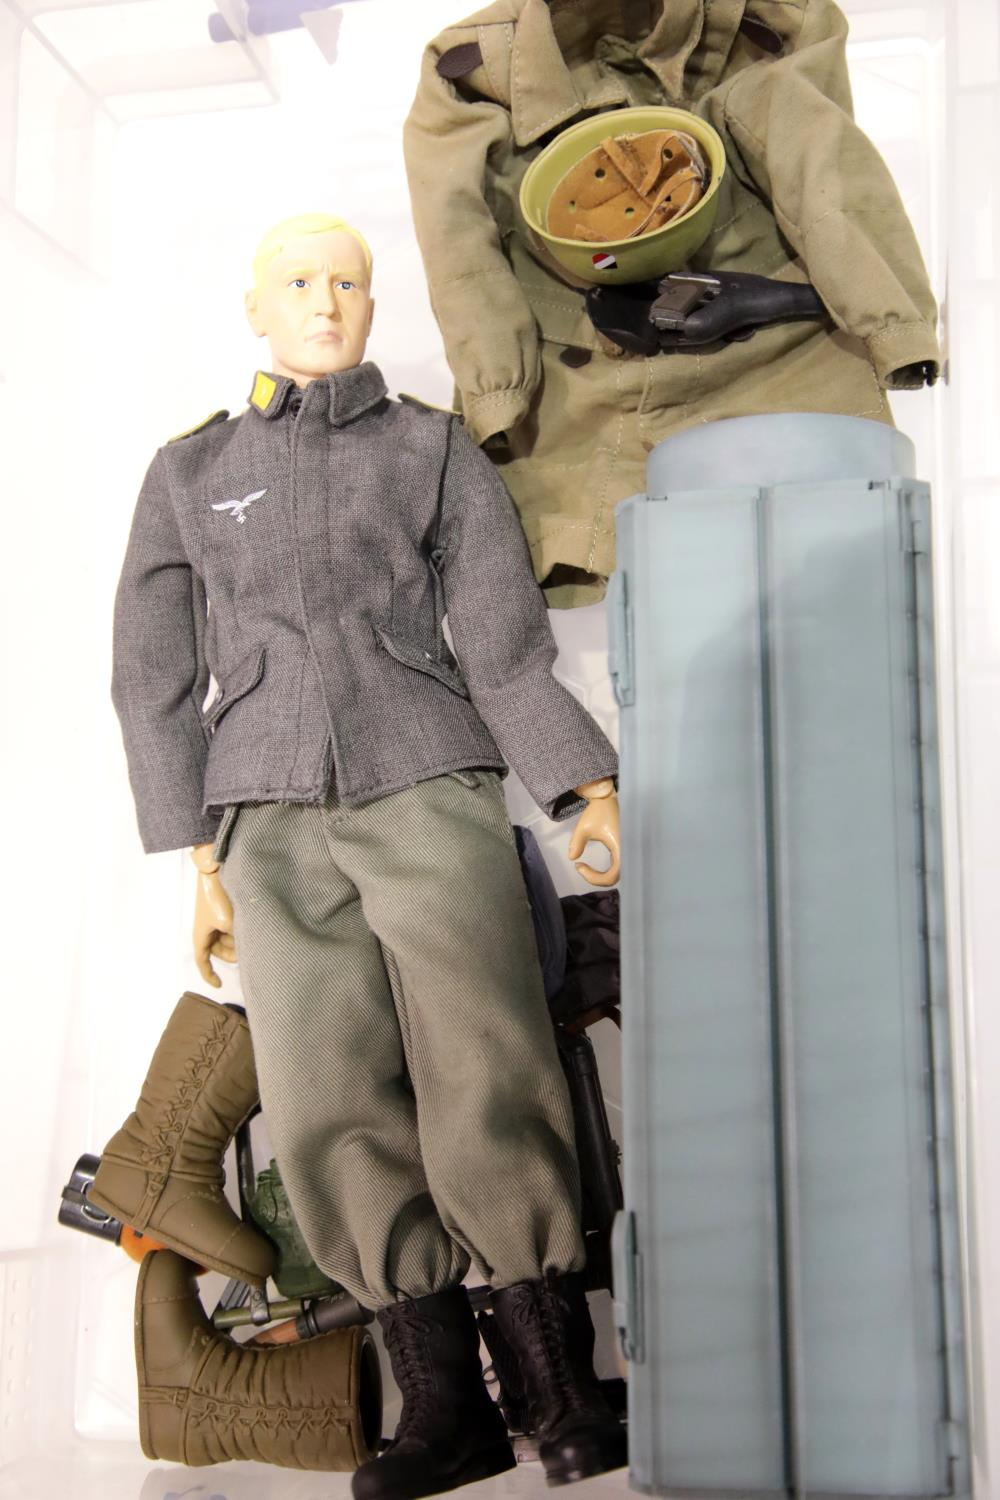 Lot 677 - Dragon WWII German soldier 1/6 scale action figure and accessories to include equipment parachute